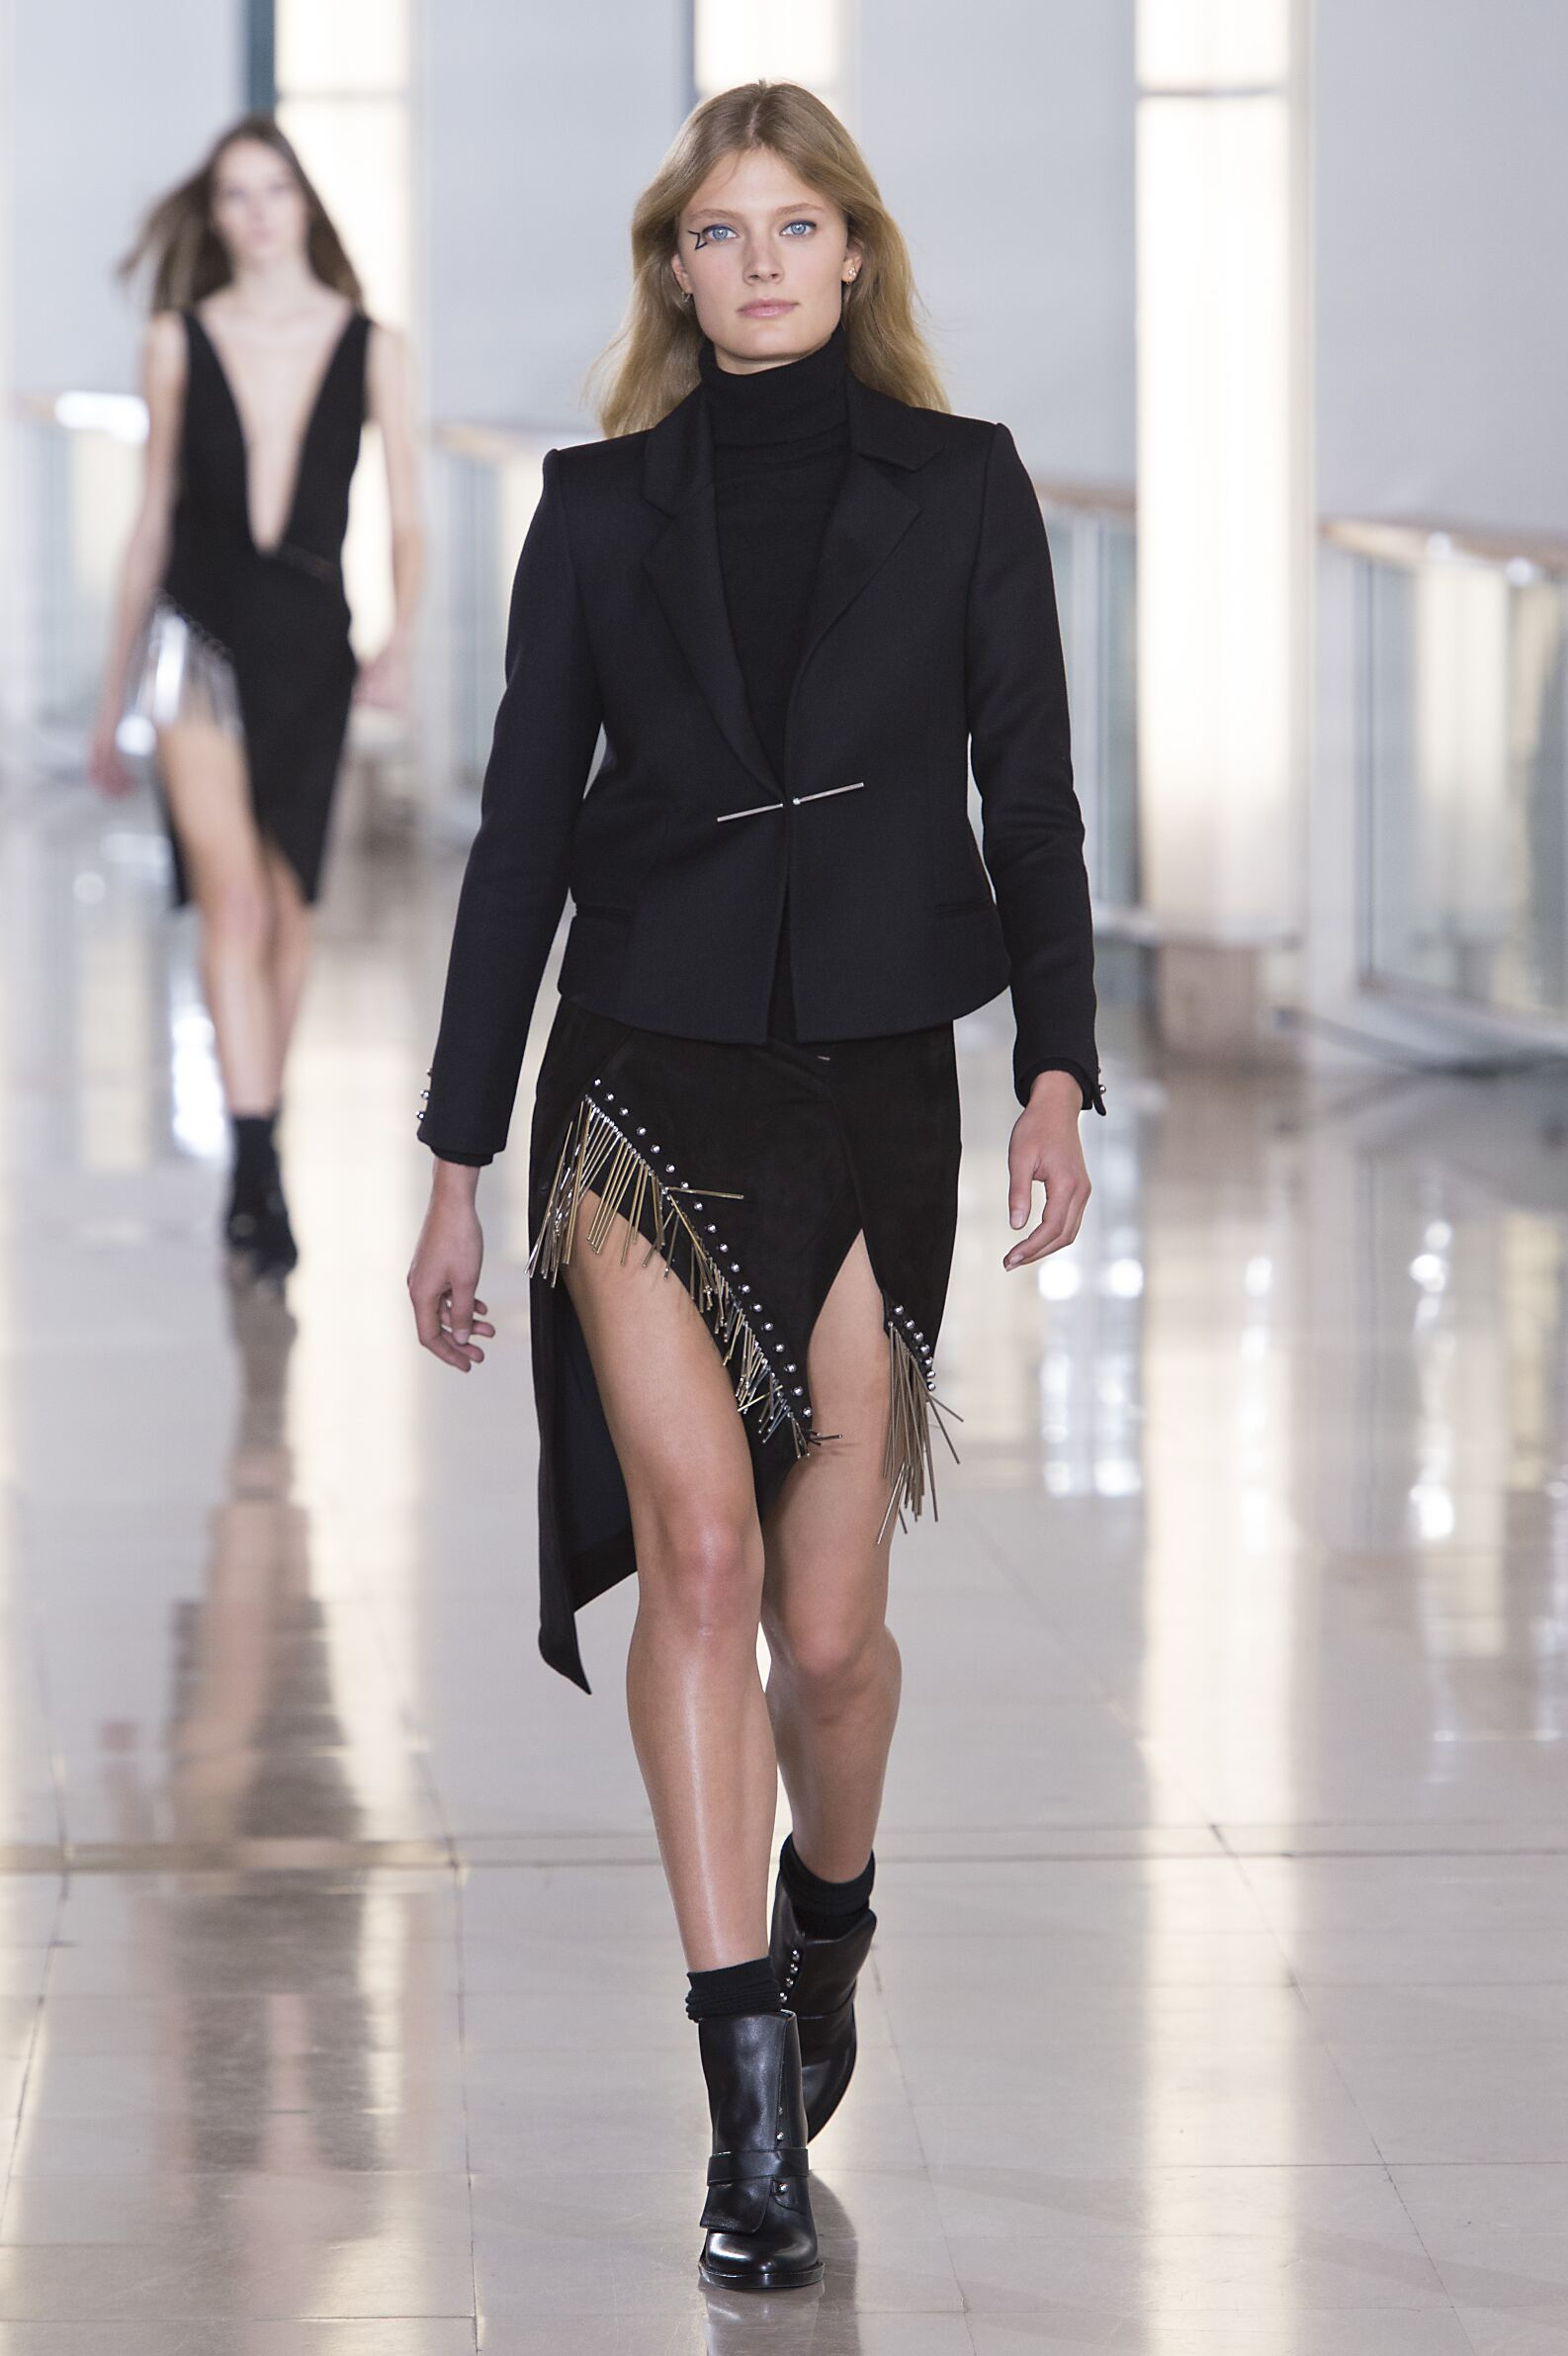 Catwalk Anthony Vaccarello Fall Winter 2015 16 Women's Collection Paris Fashion Week